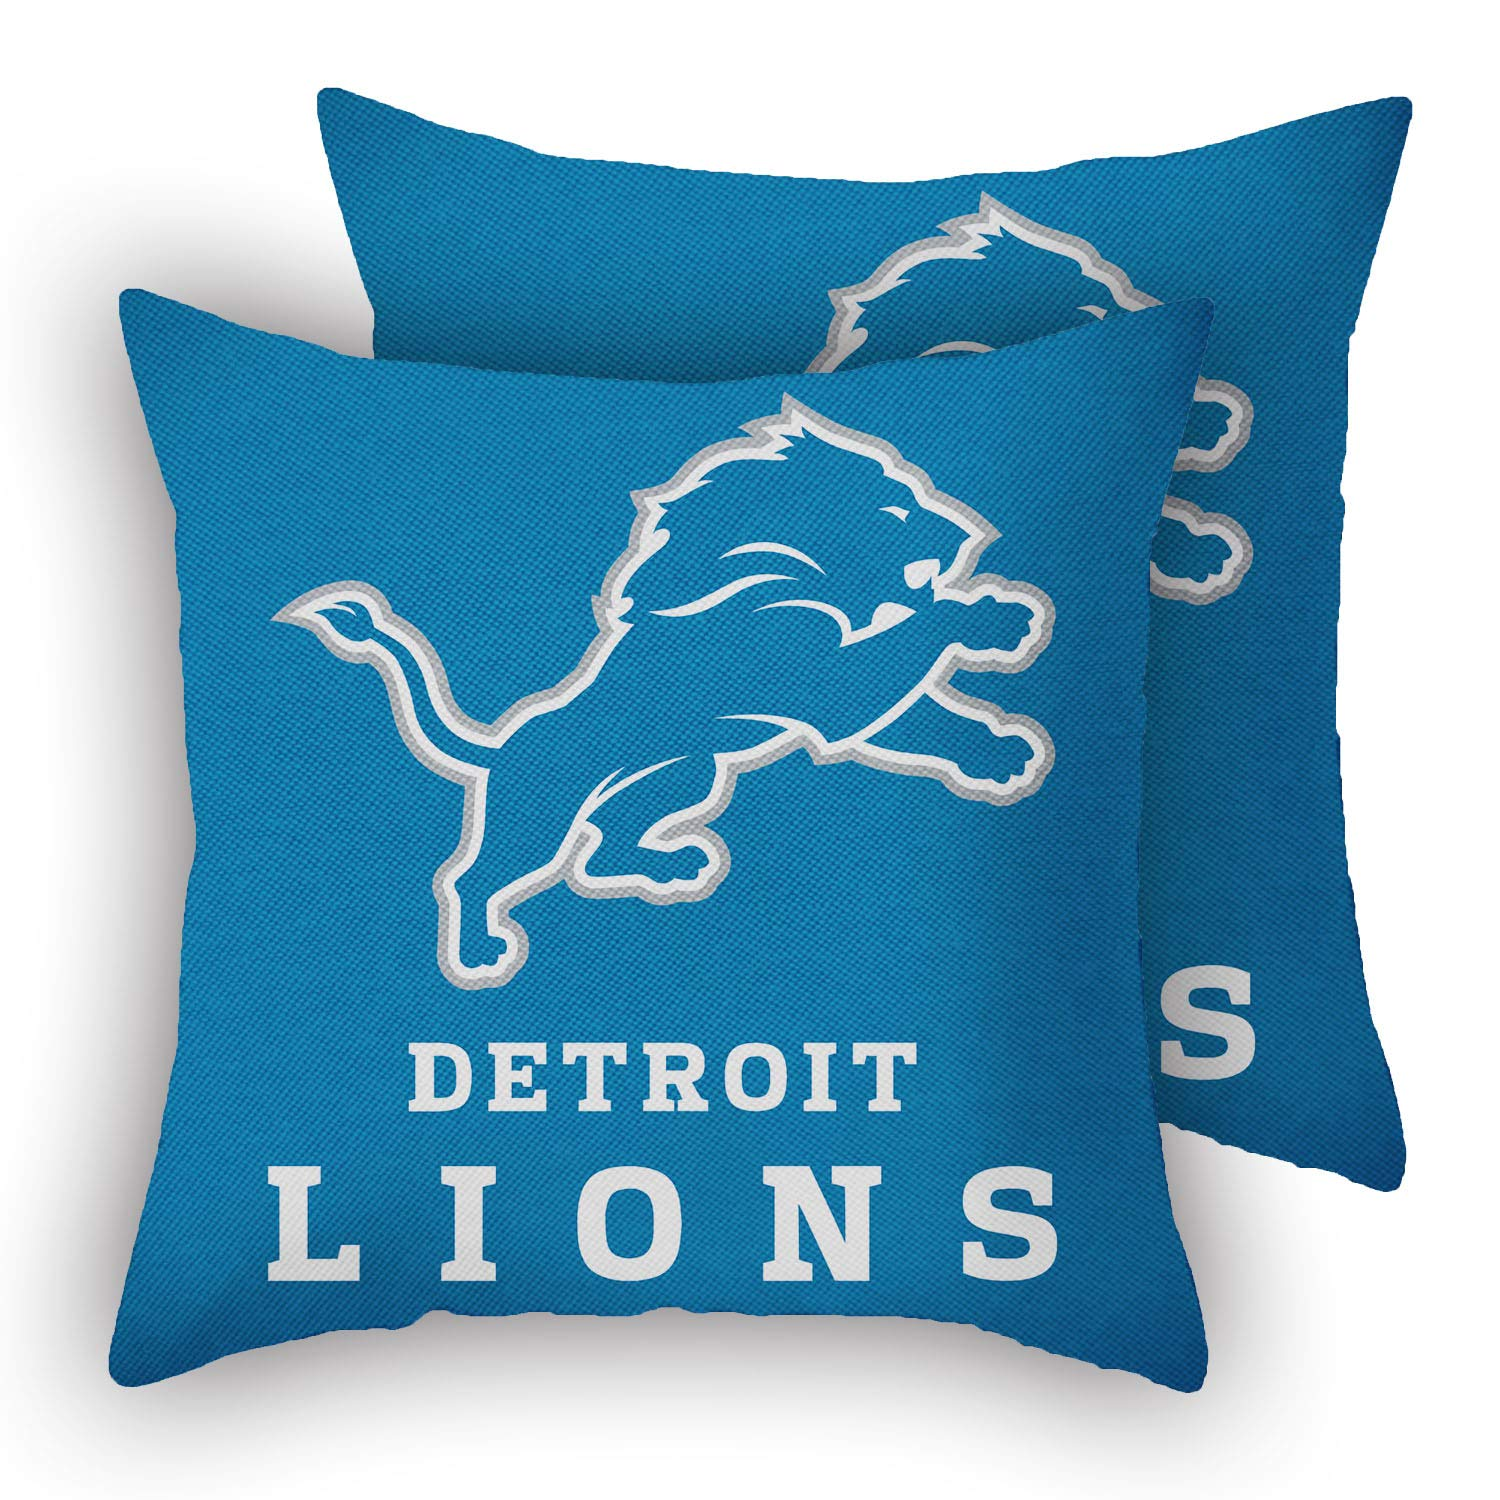 """MT-Sports Football Team Super Bowl Throw Pillow Covers Pillow Cases Two Size Decorative Pillowcase Protecter with Zipper Without Insert Set of 2 (Detroit Lions, 18"""" x 18"""")"""